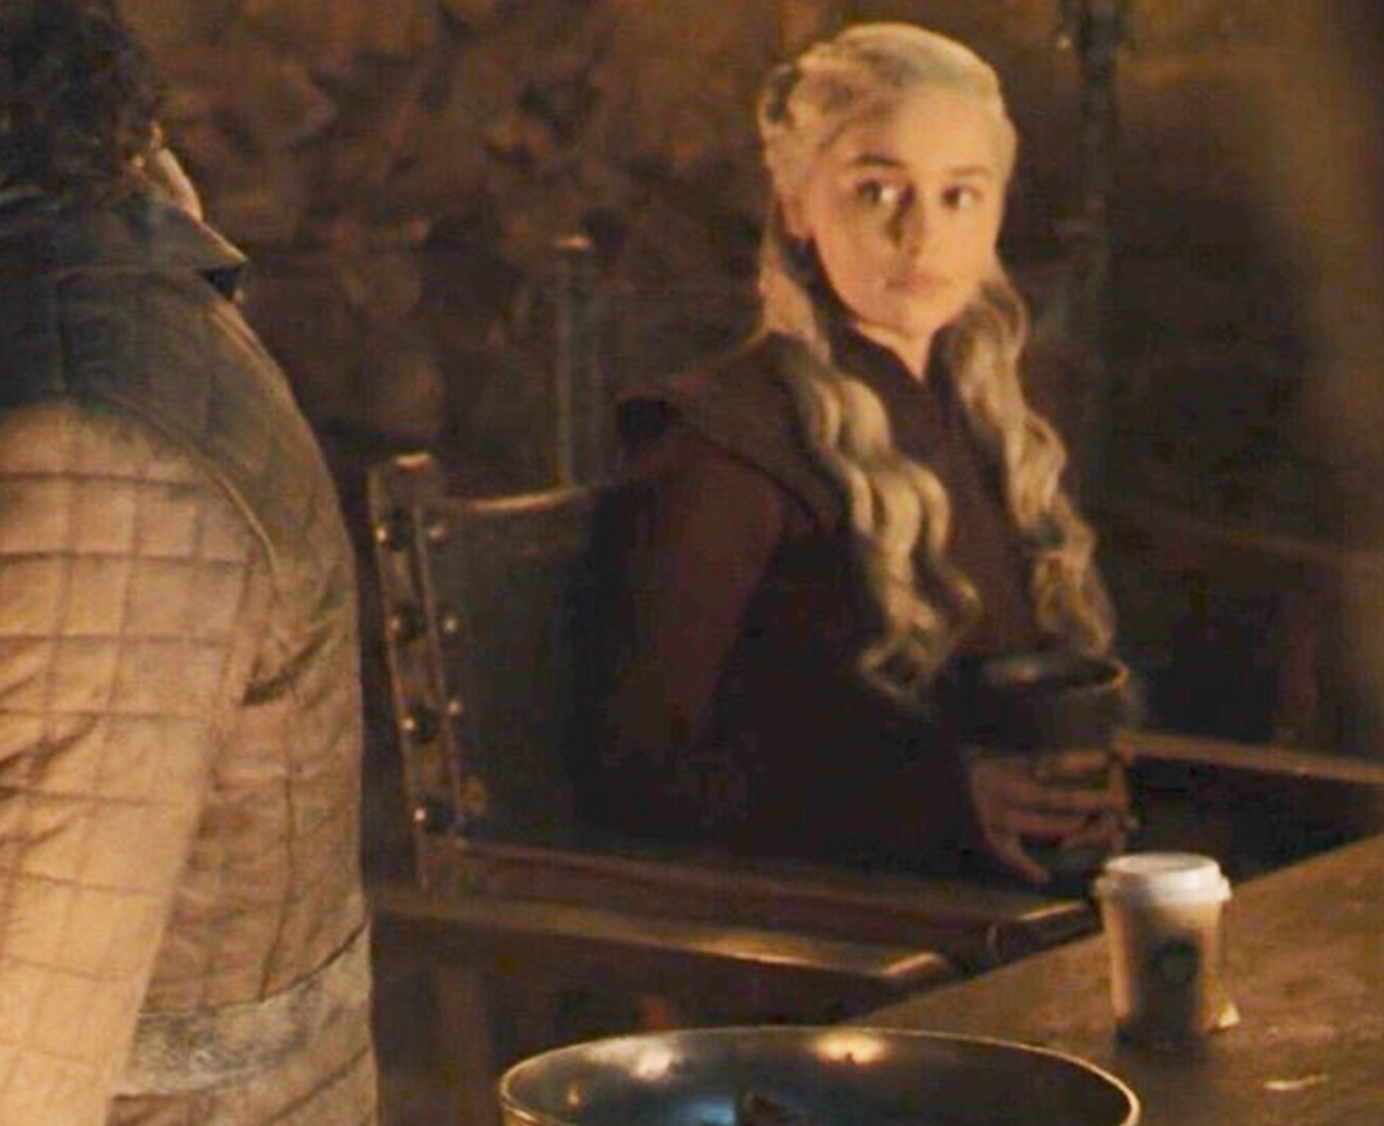 Game of Thrones Showrunners Benioff & Weiss Give Rare Post